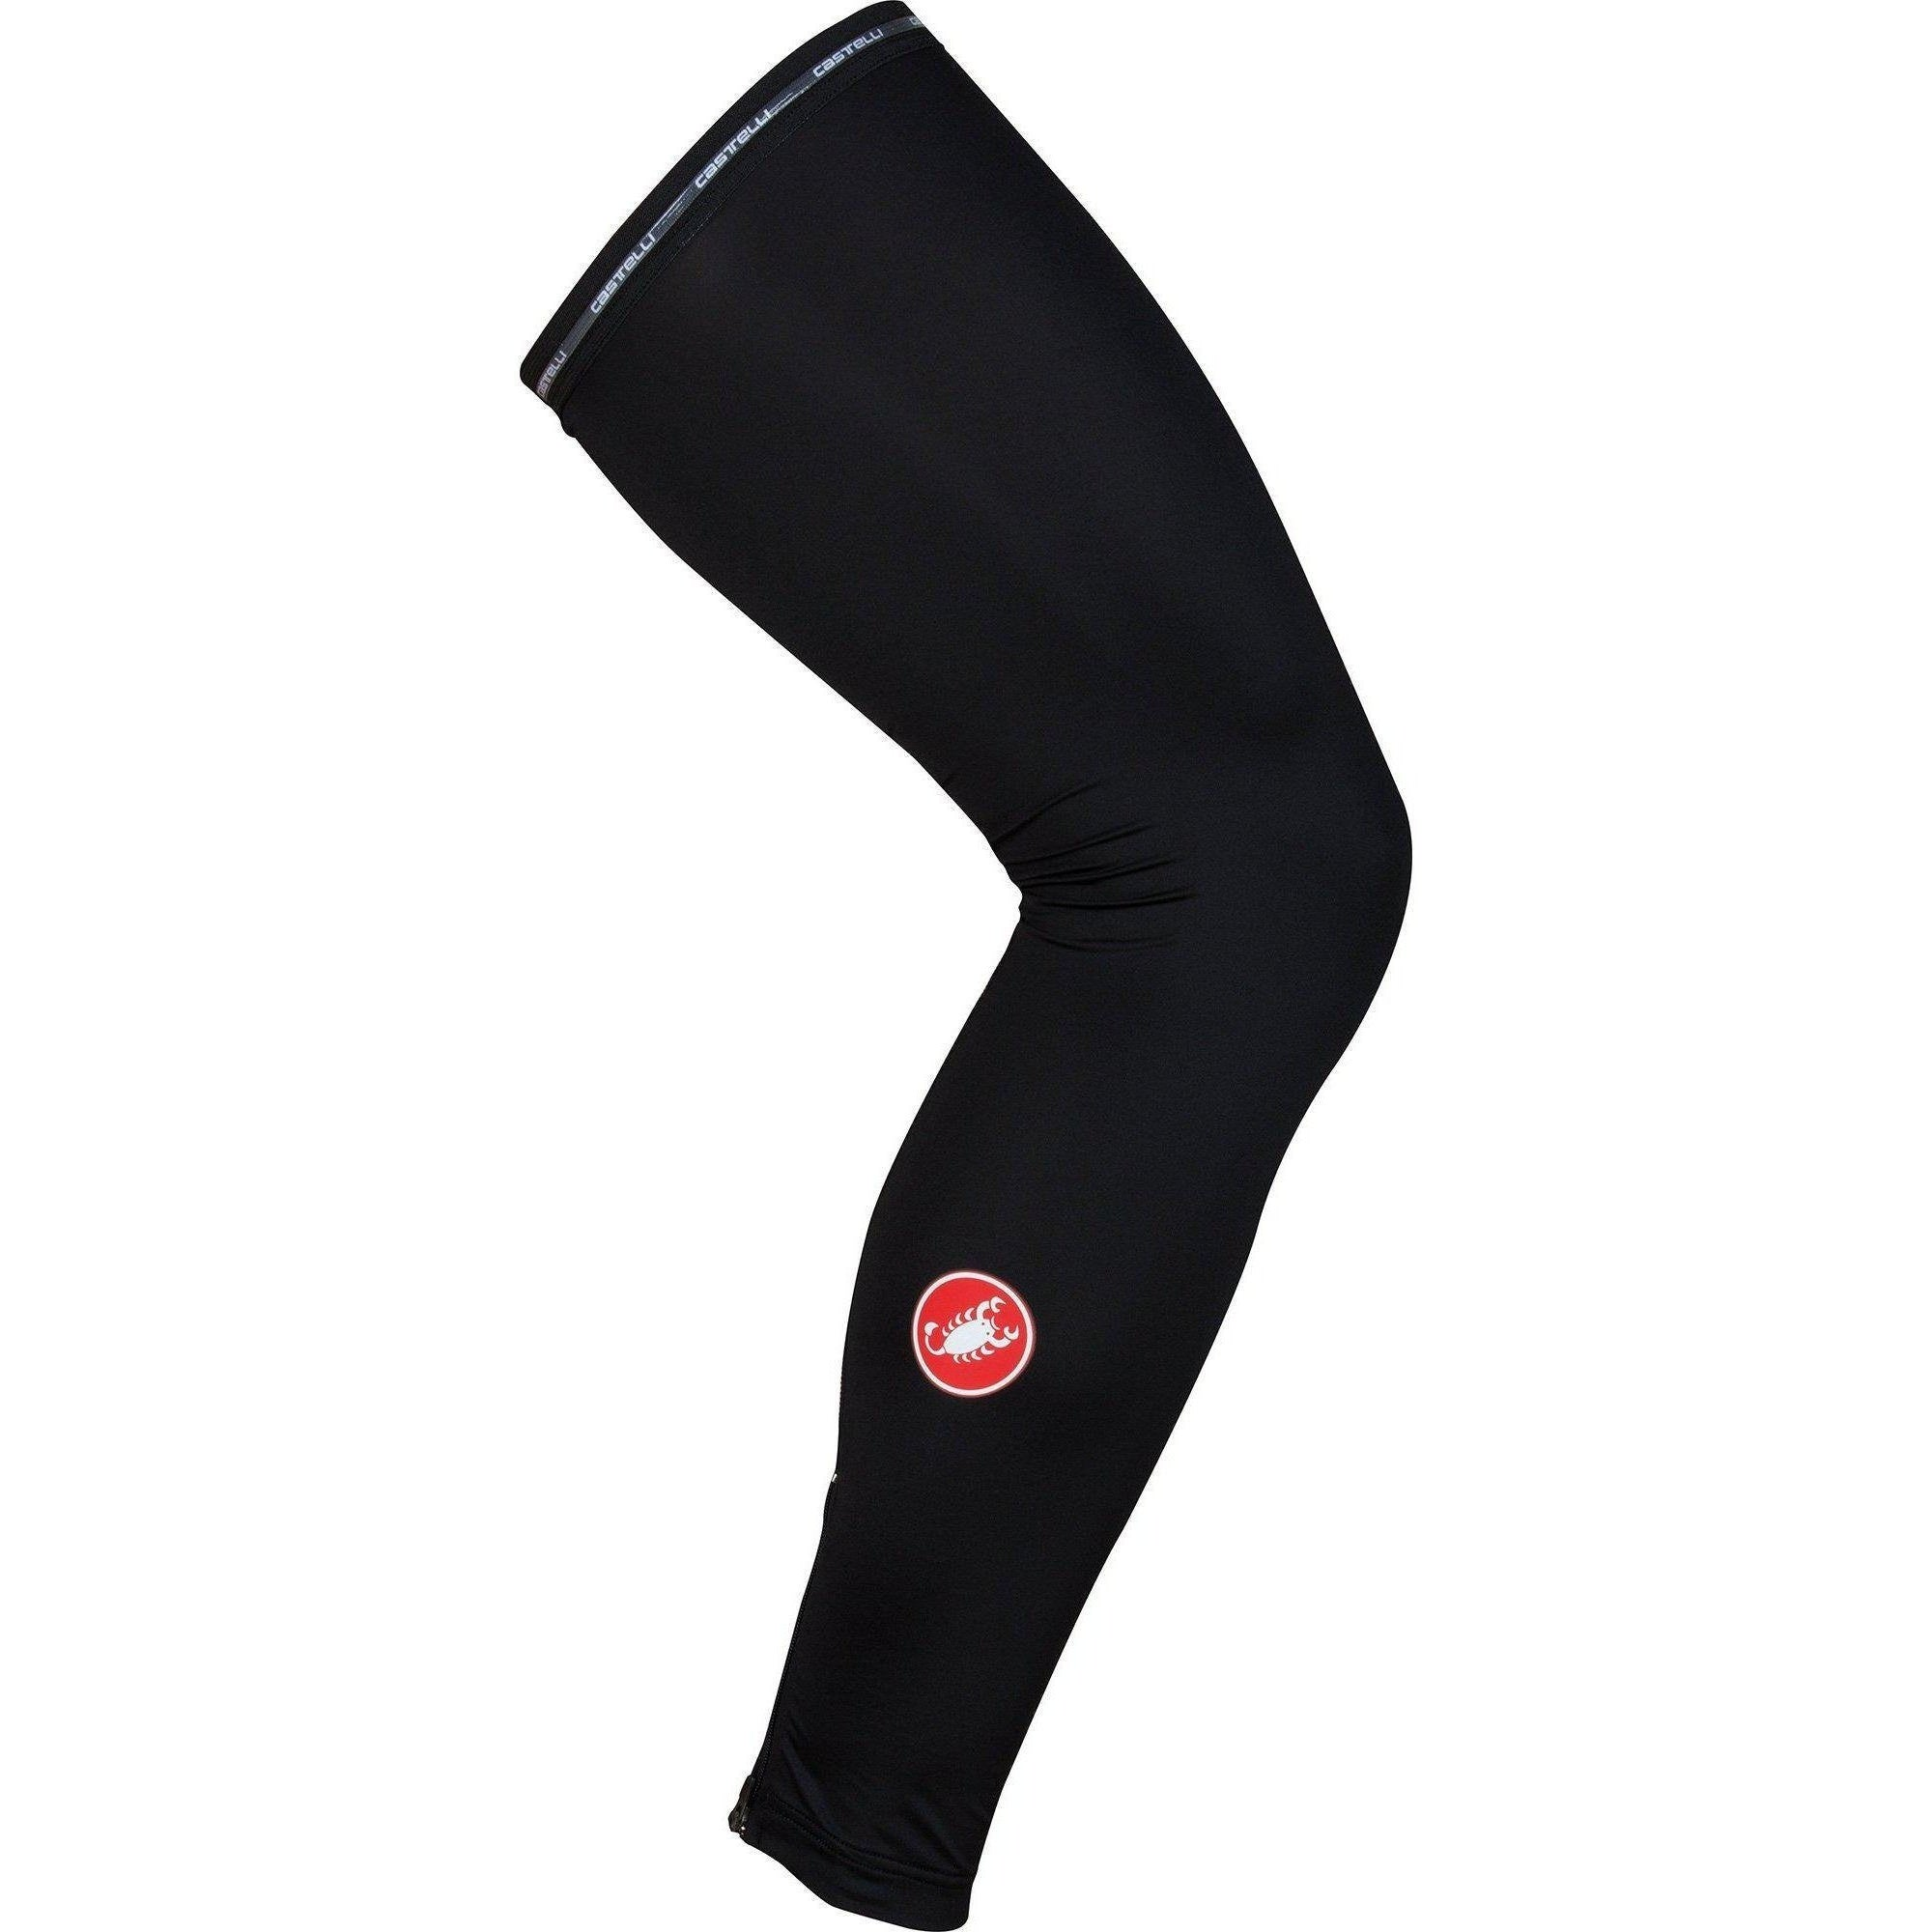 Castelli-Castelli UPF 50+ Leg Sleeves-Black-S-CS160370102-saddleback-elite-performance-cycling